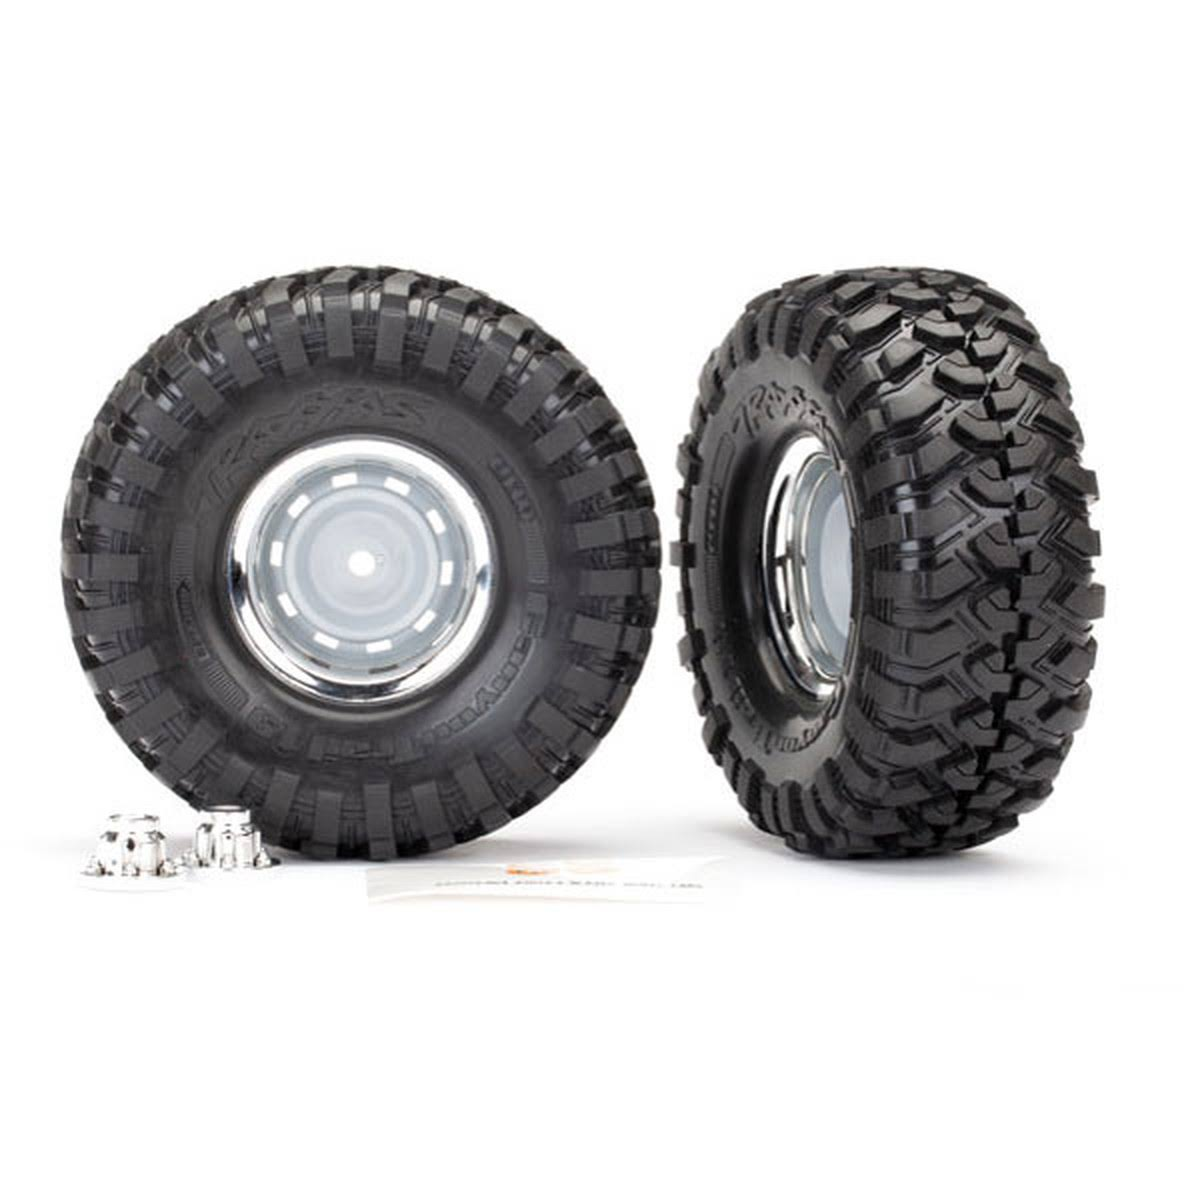 Traxxas 8166 - Canyon Trail Tires, Chrome 1.9 Wheels, Assembled, Glued (2)